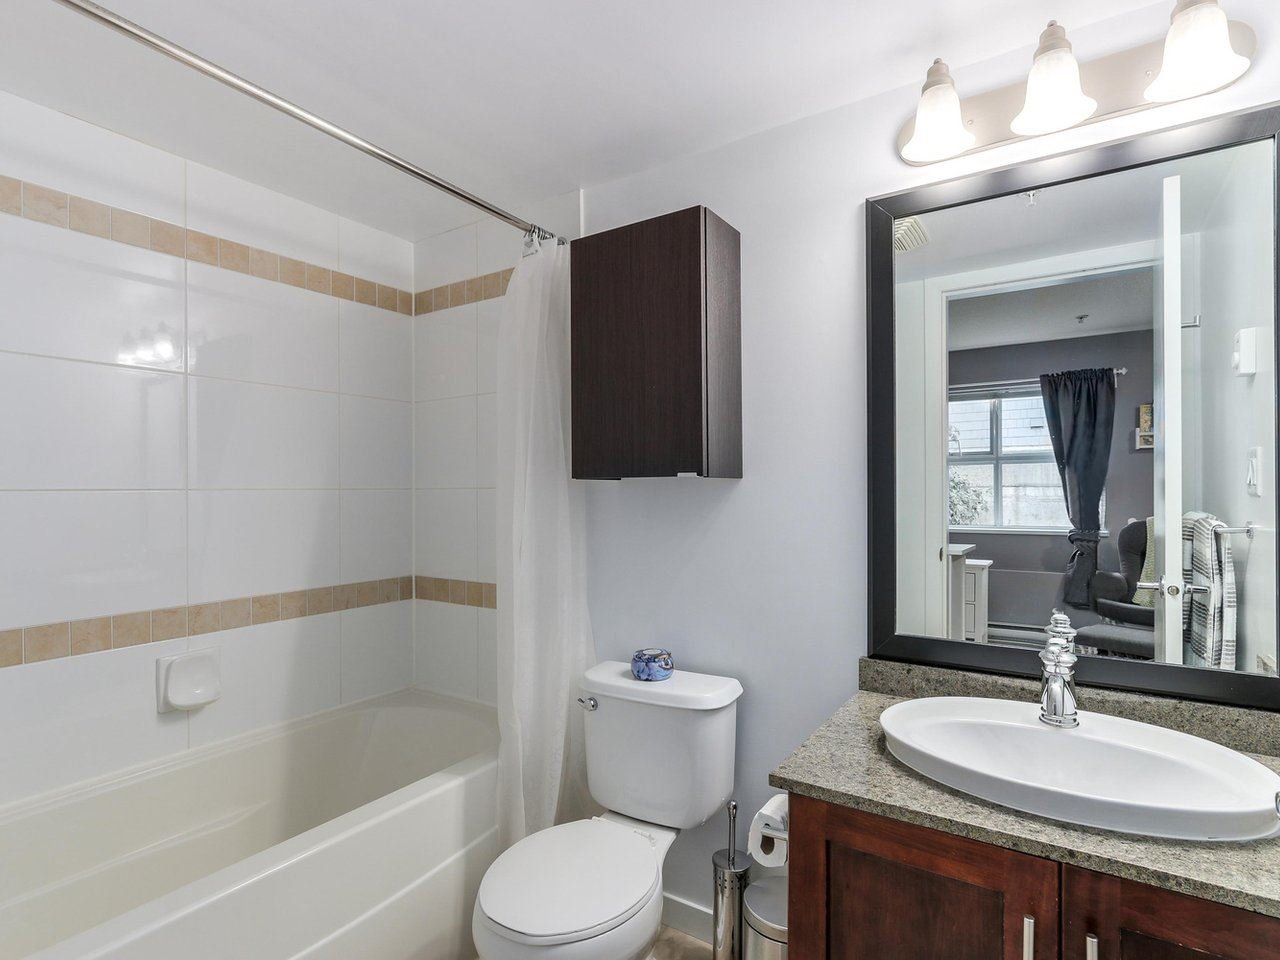 Photo 17: Photos: 119 672 W 6TH AVENUE in Vancouver: Fairview VW Townhouse for sale (Vancouver West)  : MLS®# R2401186